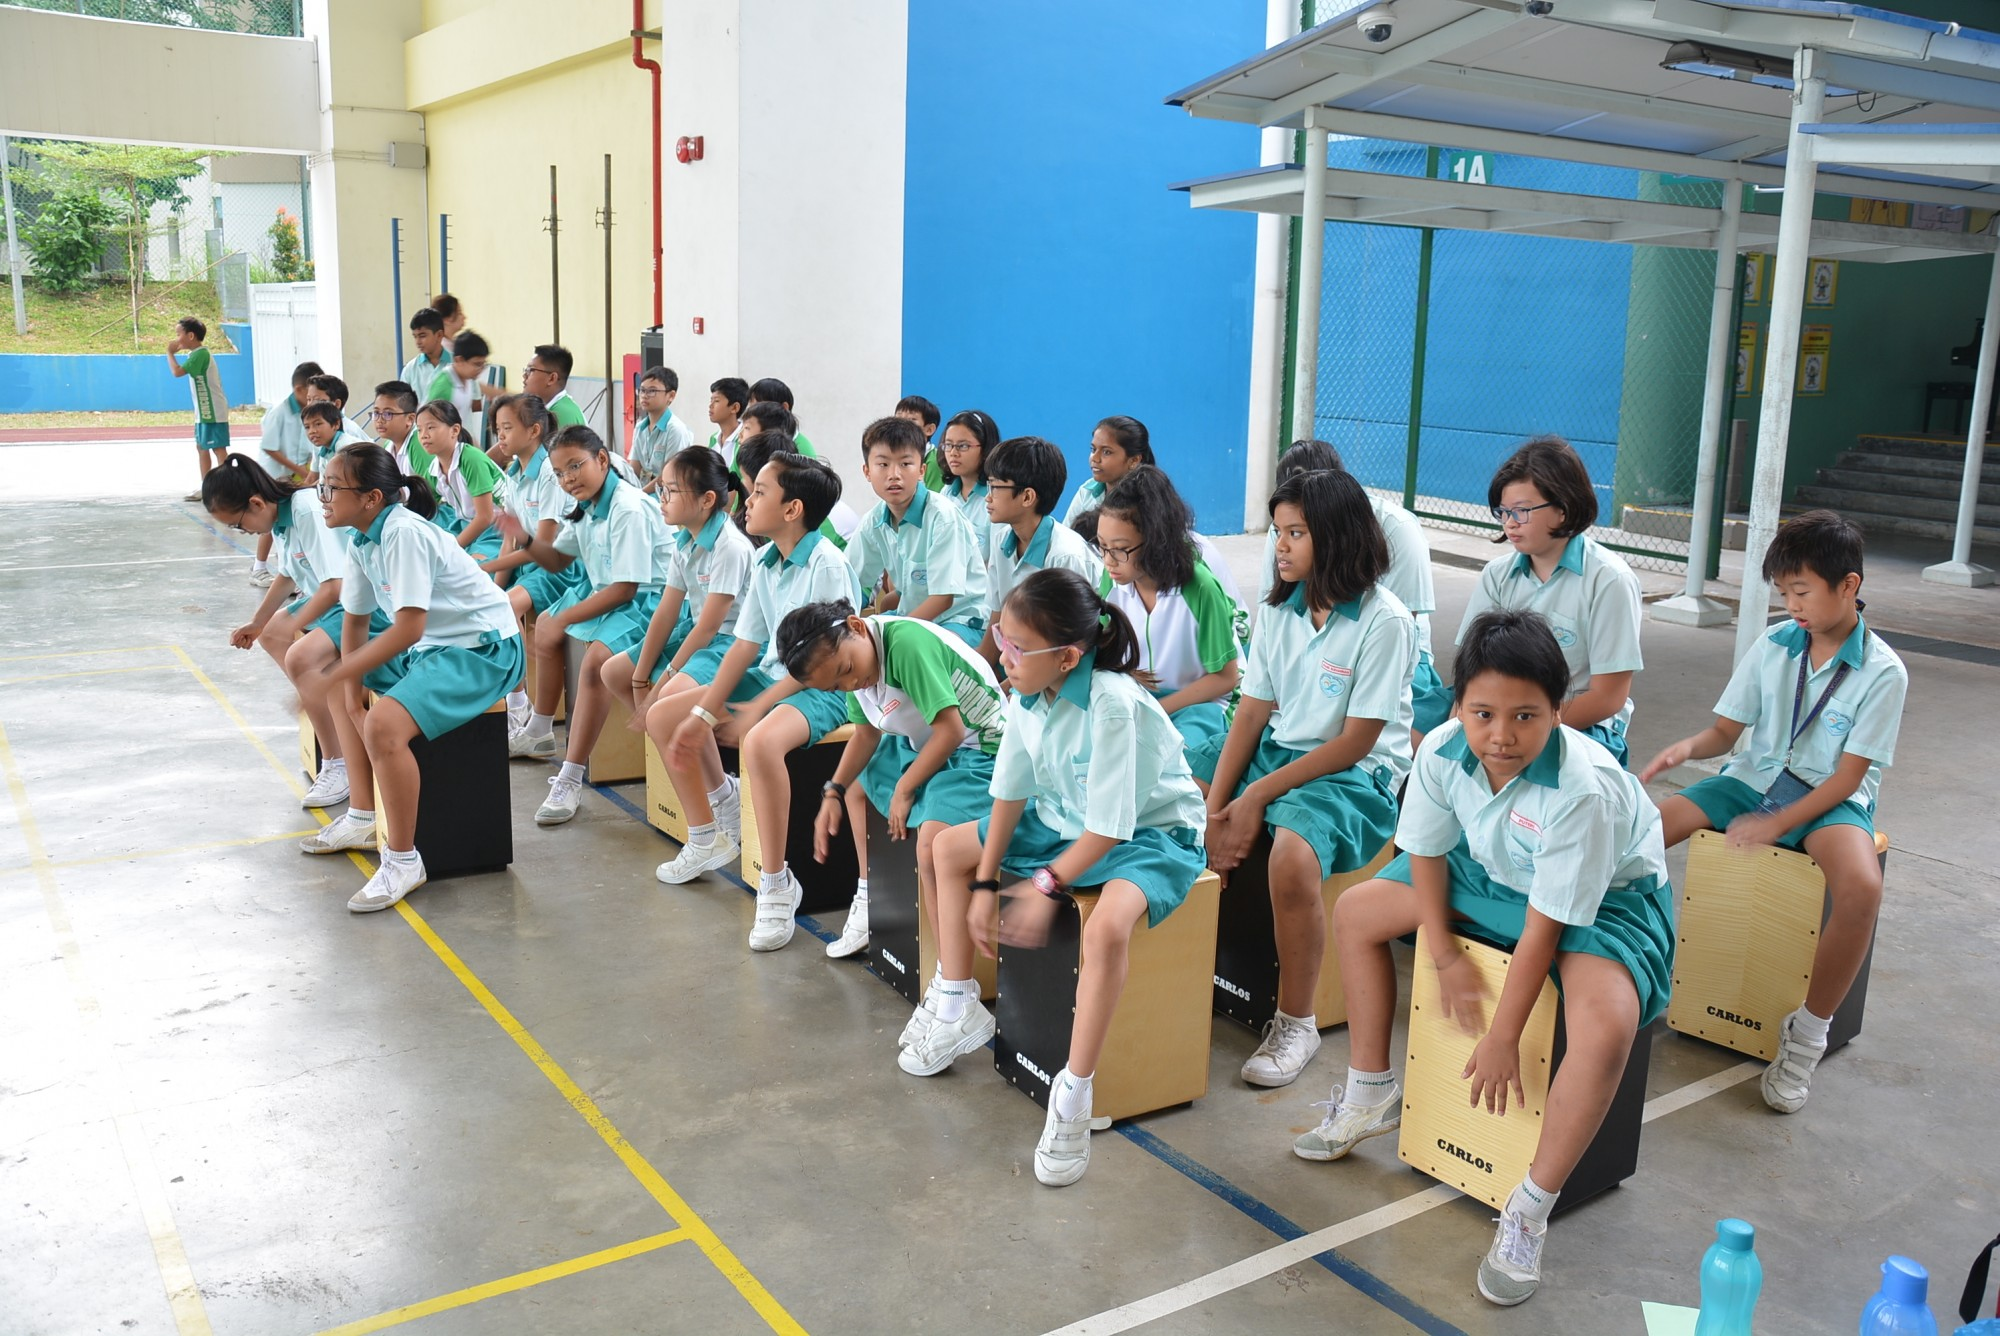 3. P5 students performing on the cajaon during recess.JPG